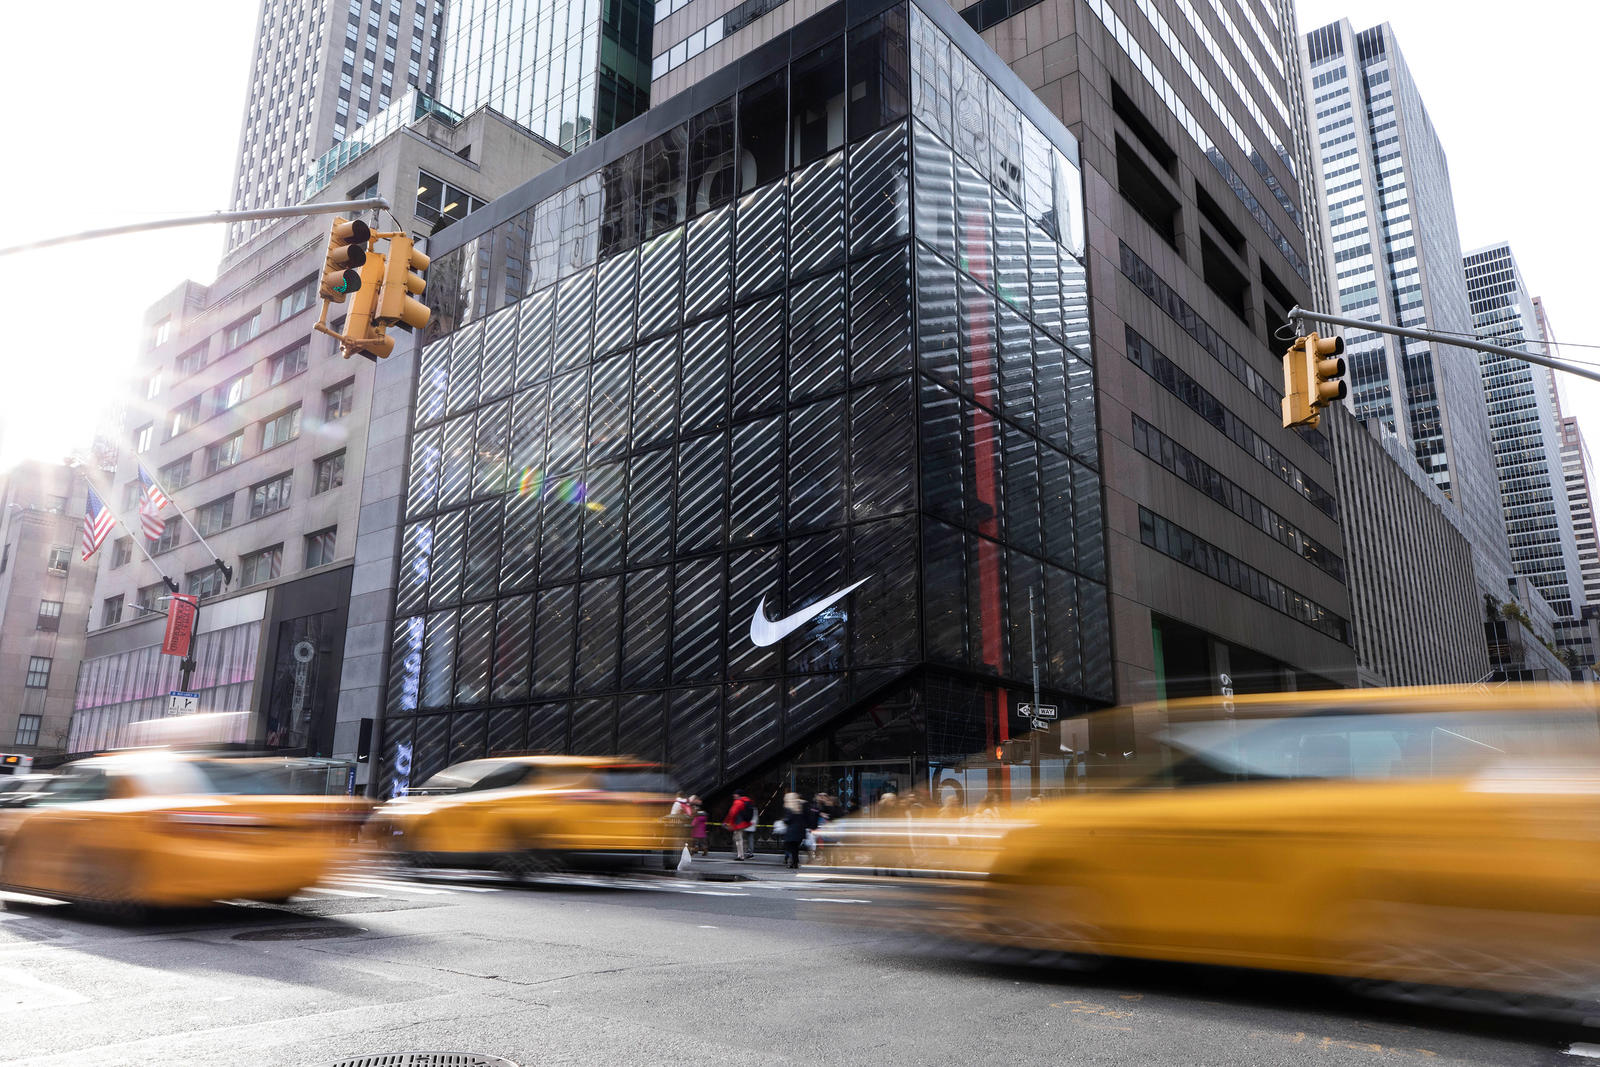 zapatos exclusivos baratas mejores telas First Look: Nike NYC Flagship - Nike News